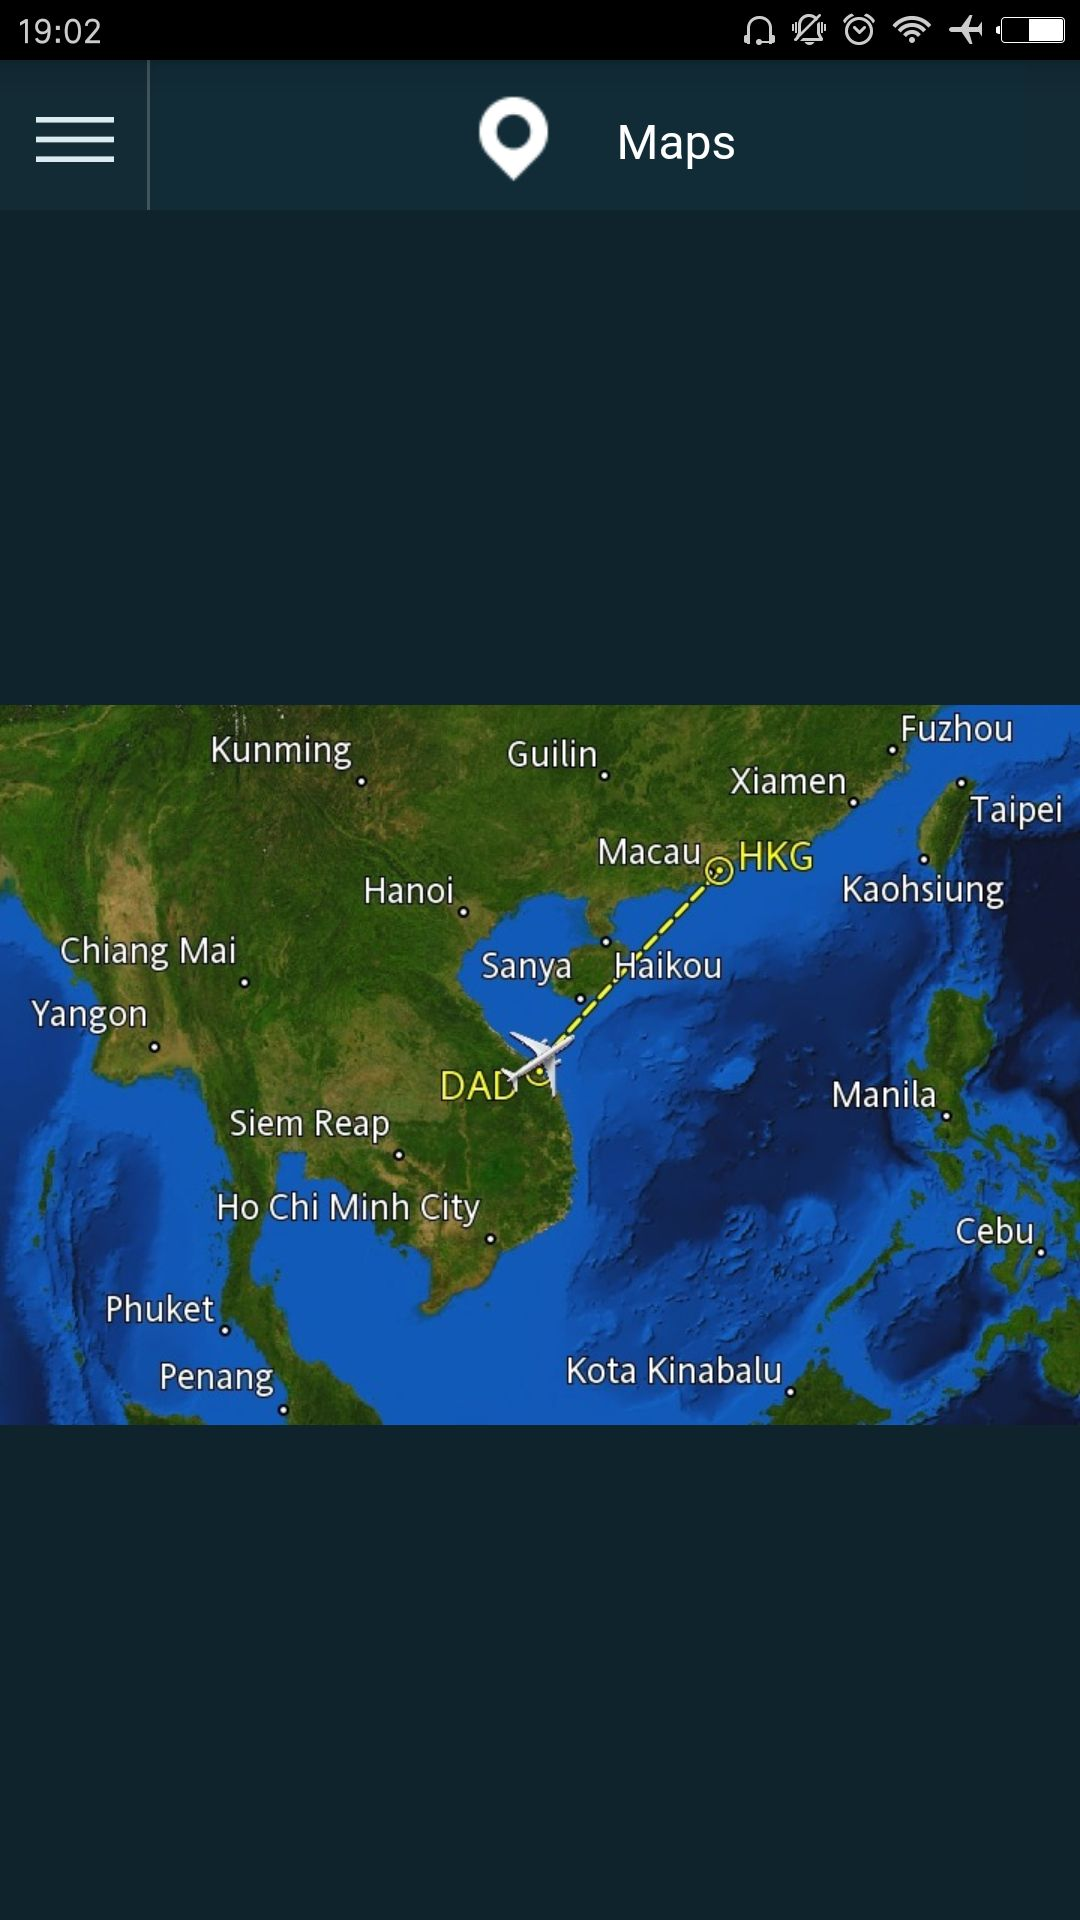 photo screenshot_2018-01-29-19-02-34-051_com.cathaypacific.studioka